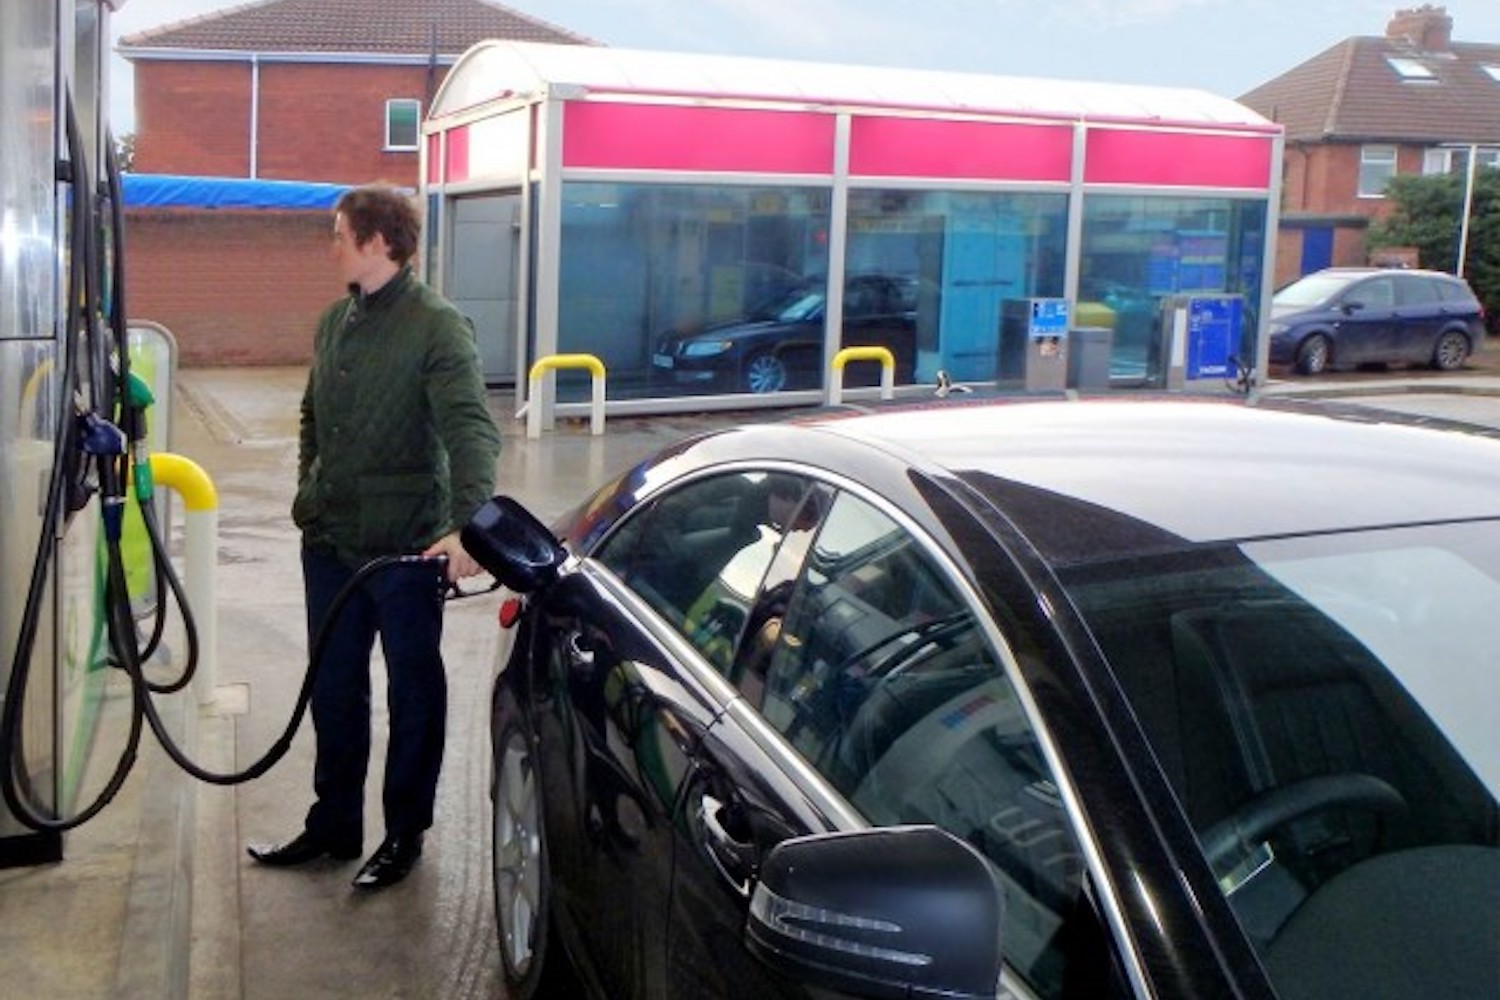 Car News | Fuel prices in Ireland drop as traffic levels increase | CompleteCar.ie